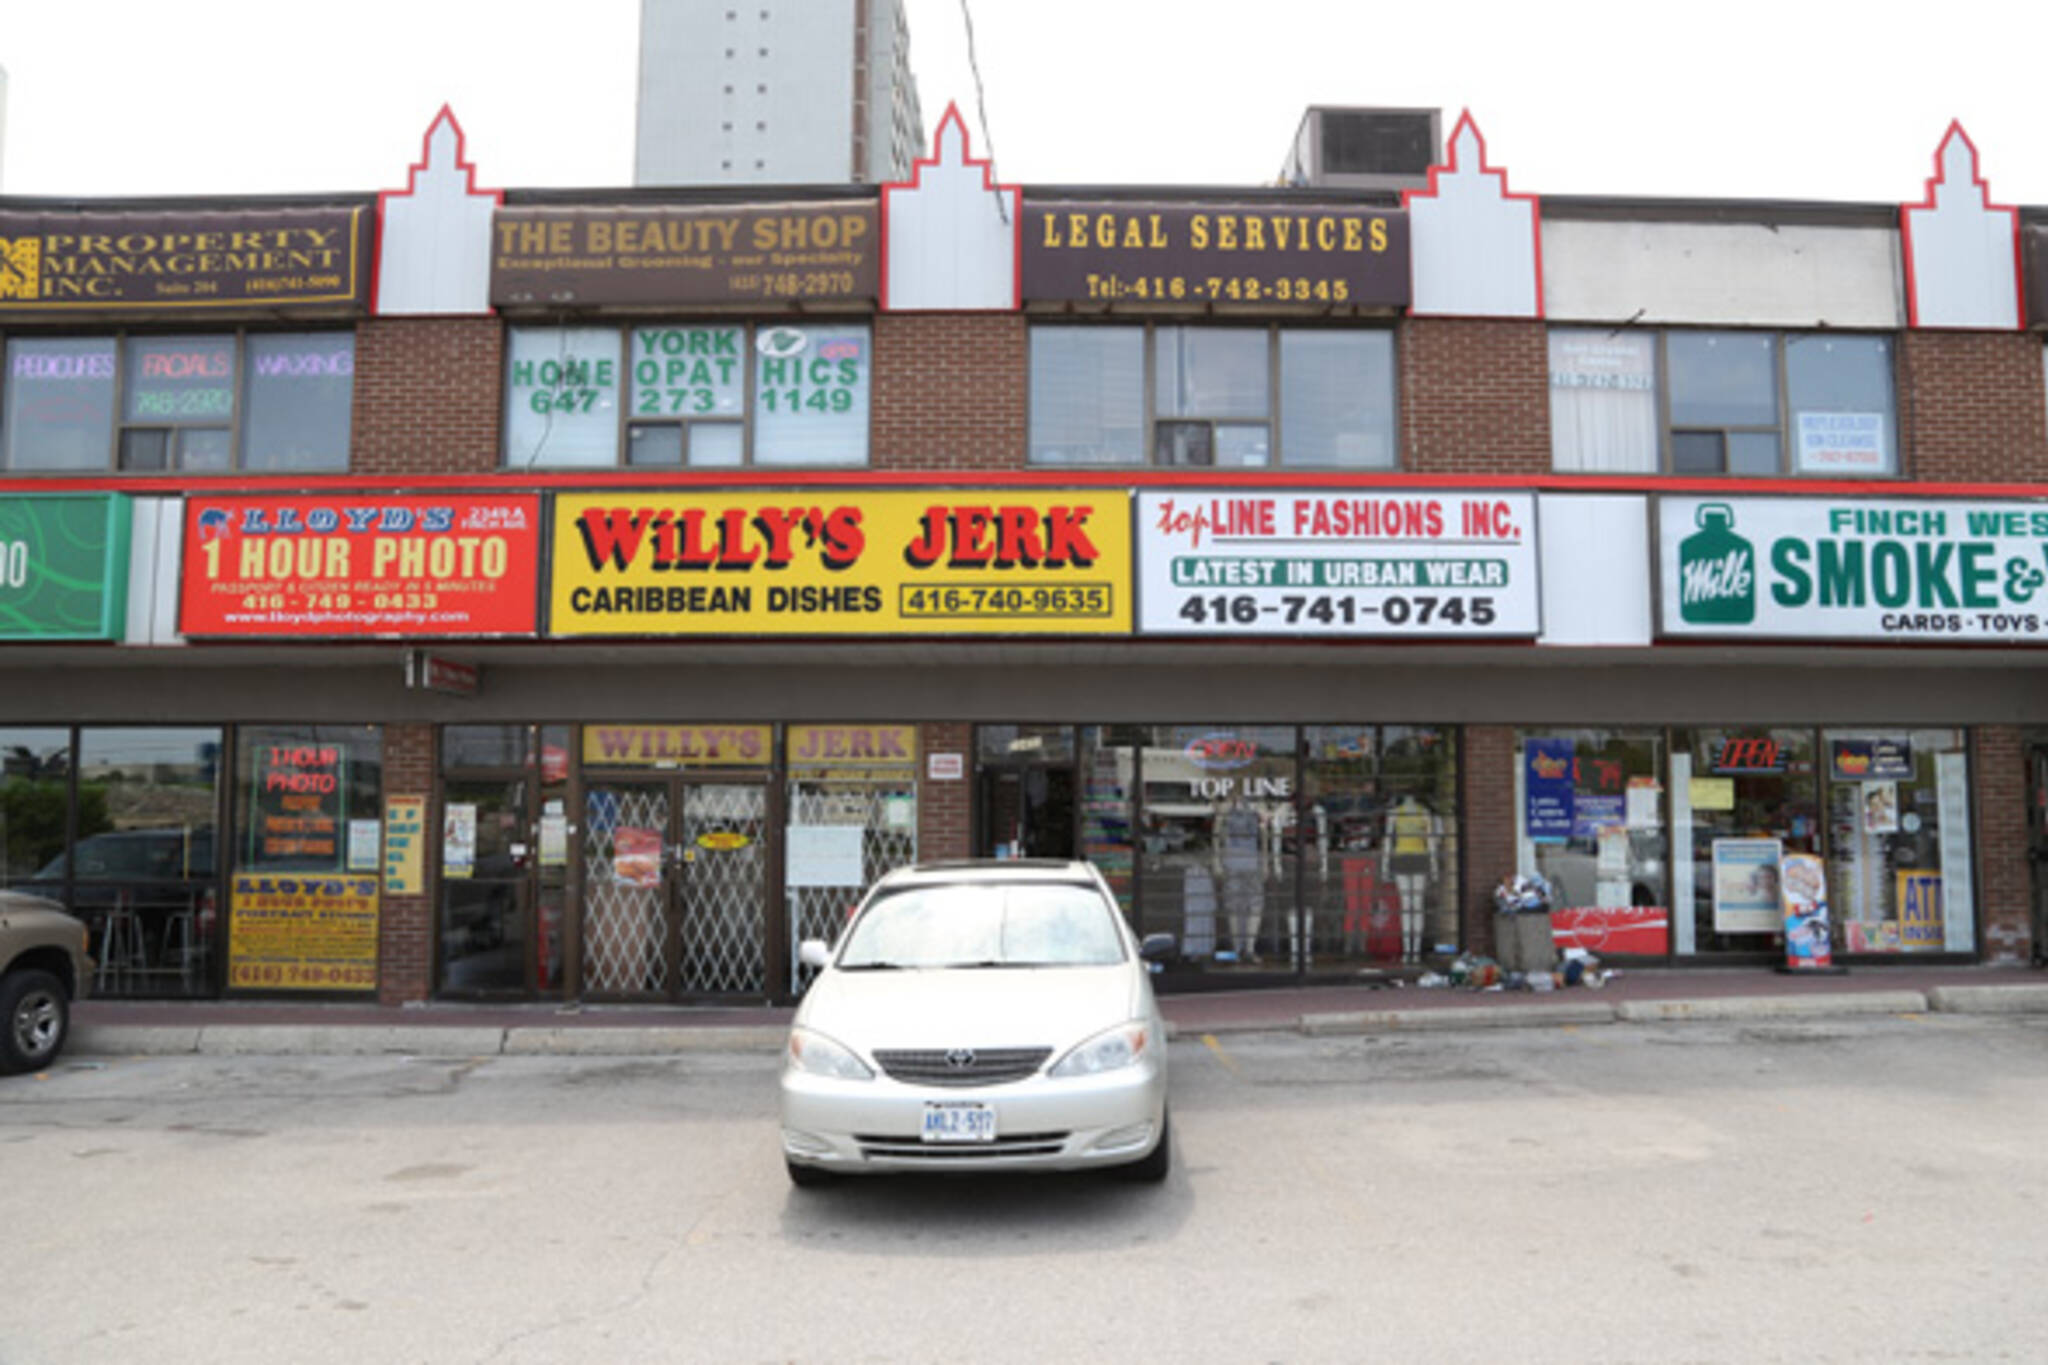 willys jerk toronto